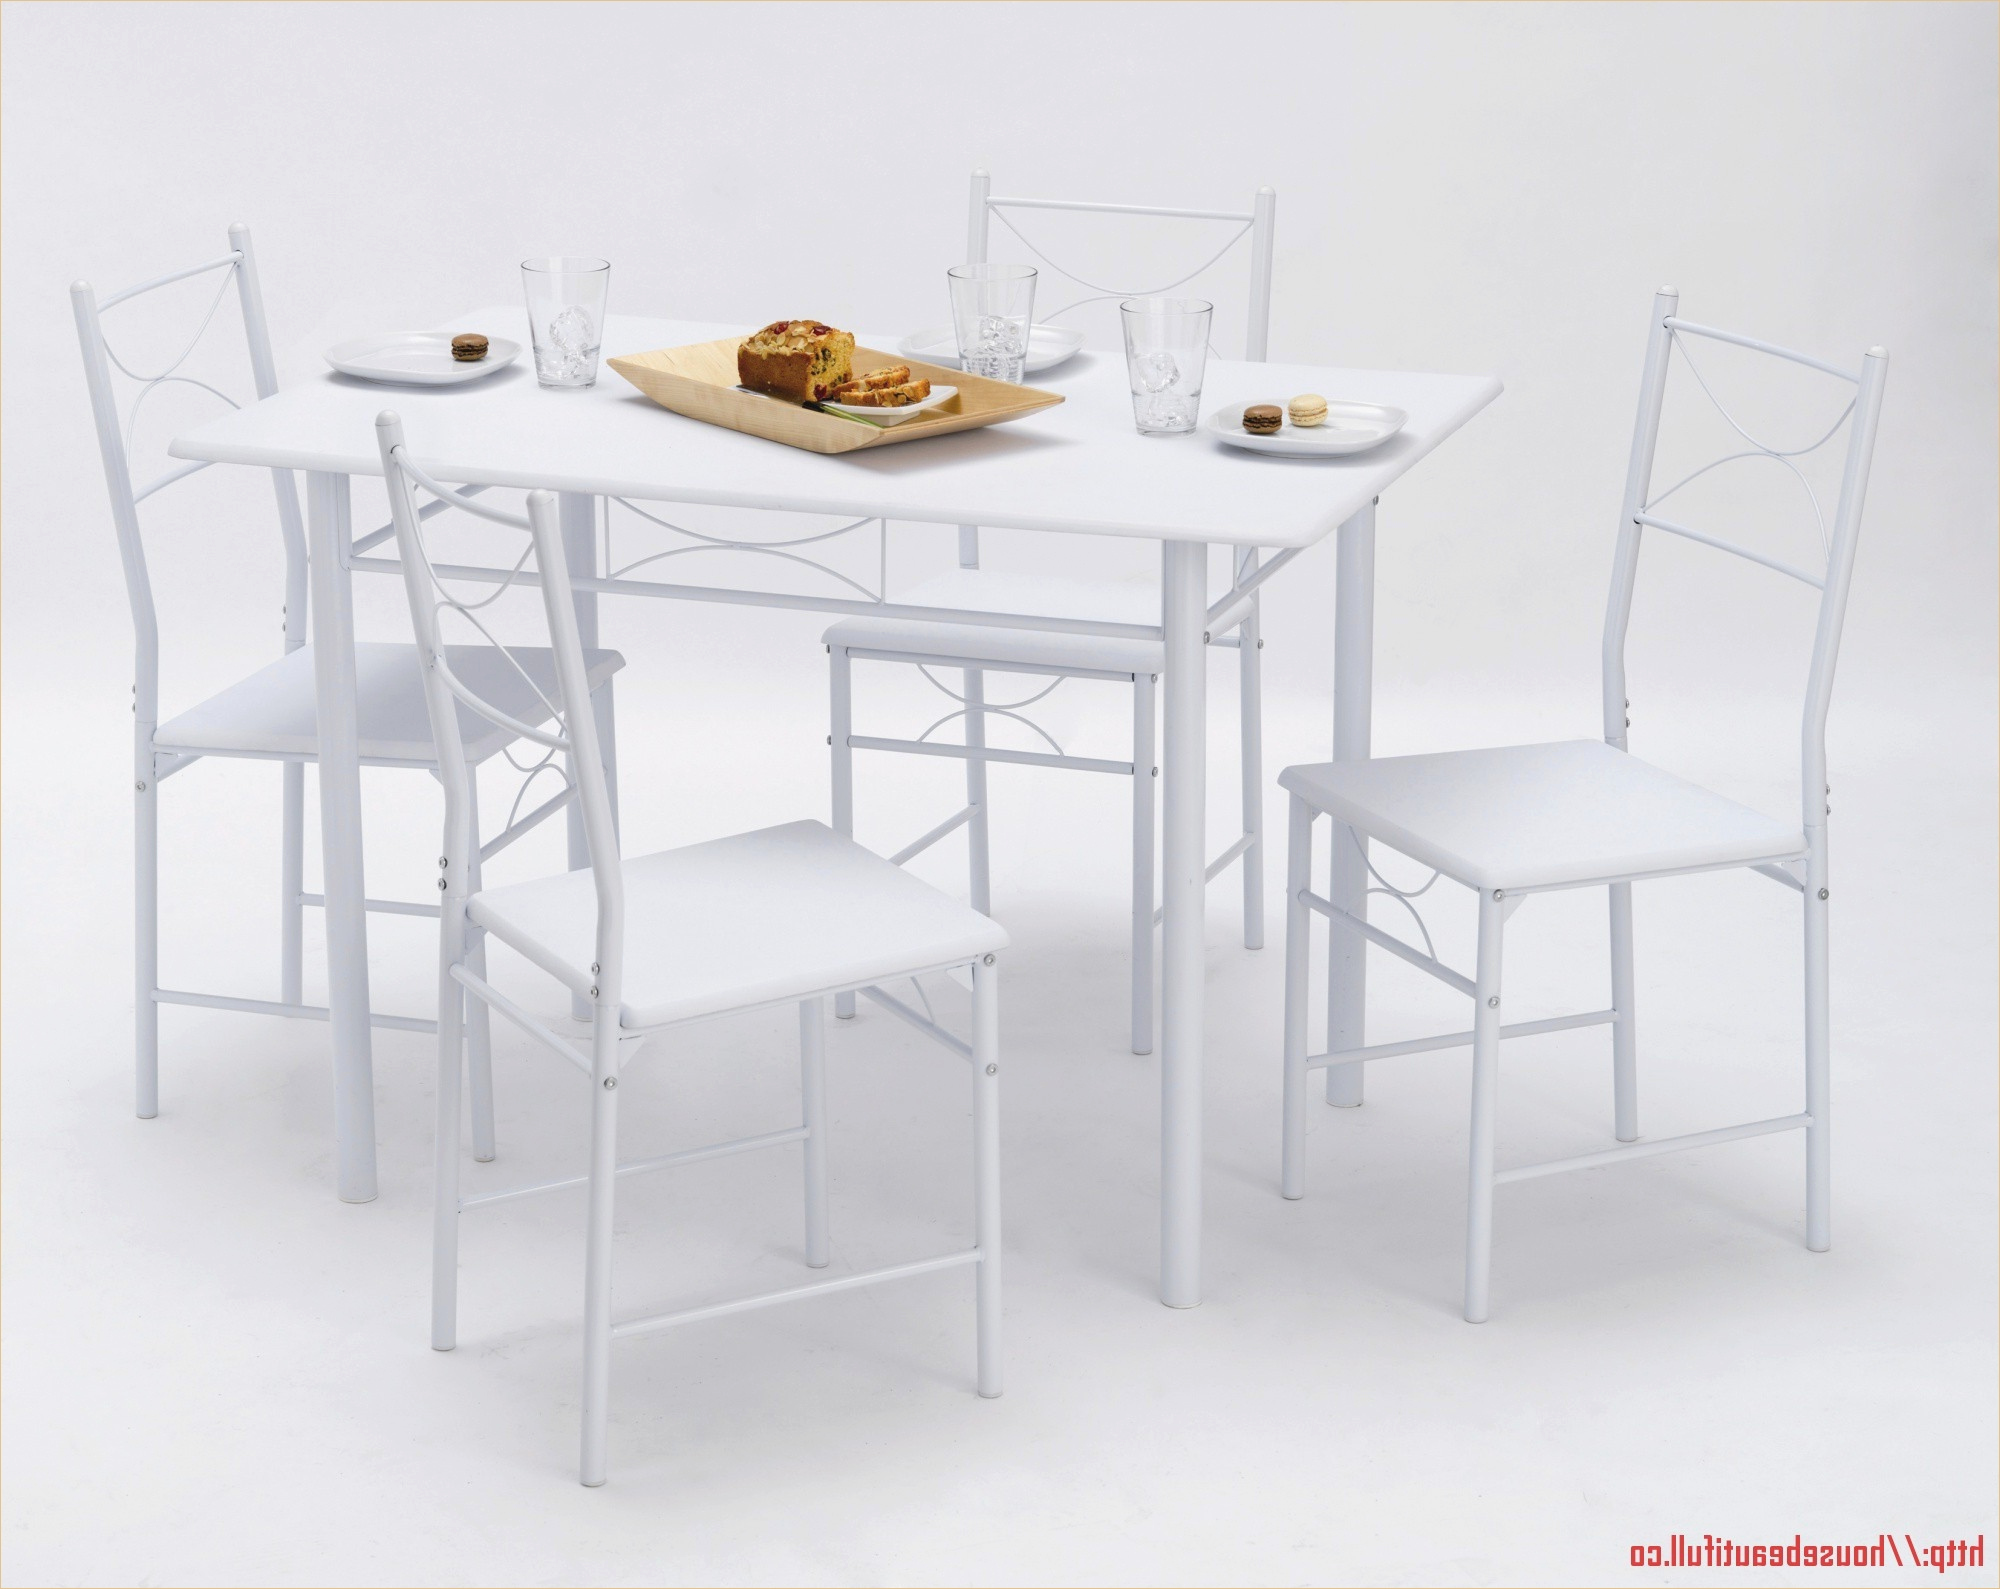 Table Haute Castorama Table Haute Bar Cuisine Conforama - Lille-menage.fr Maison